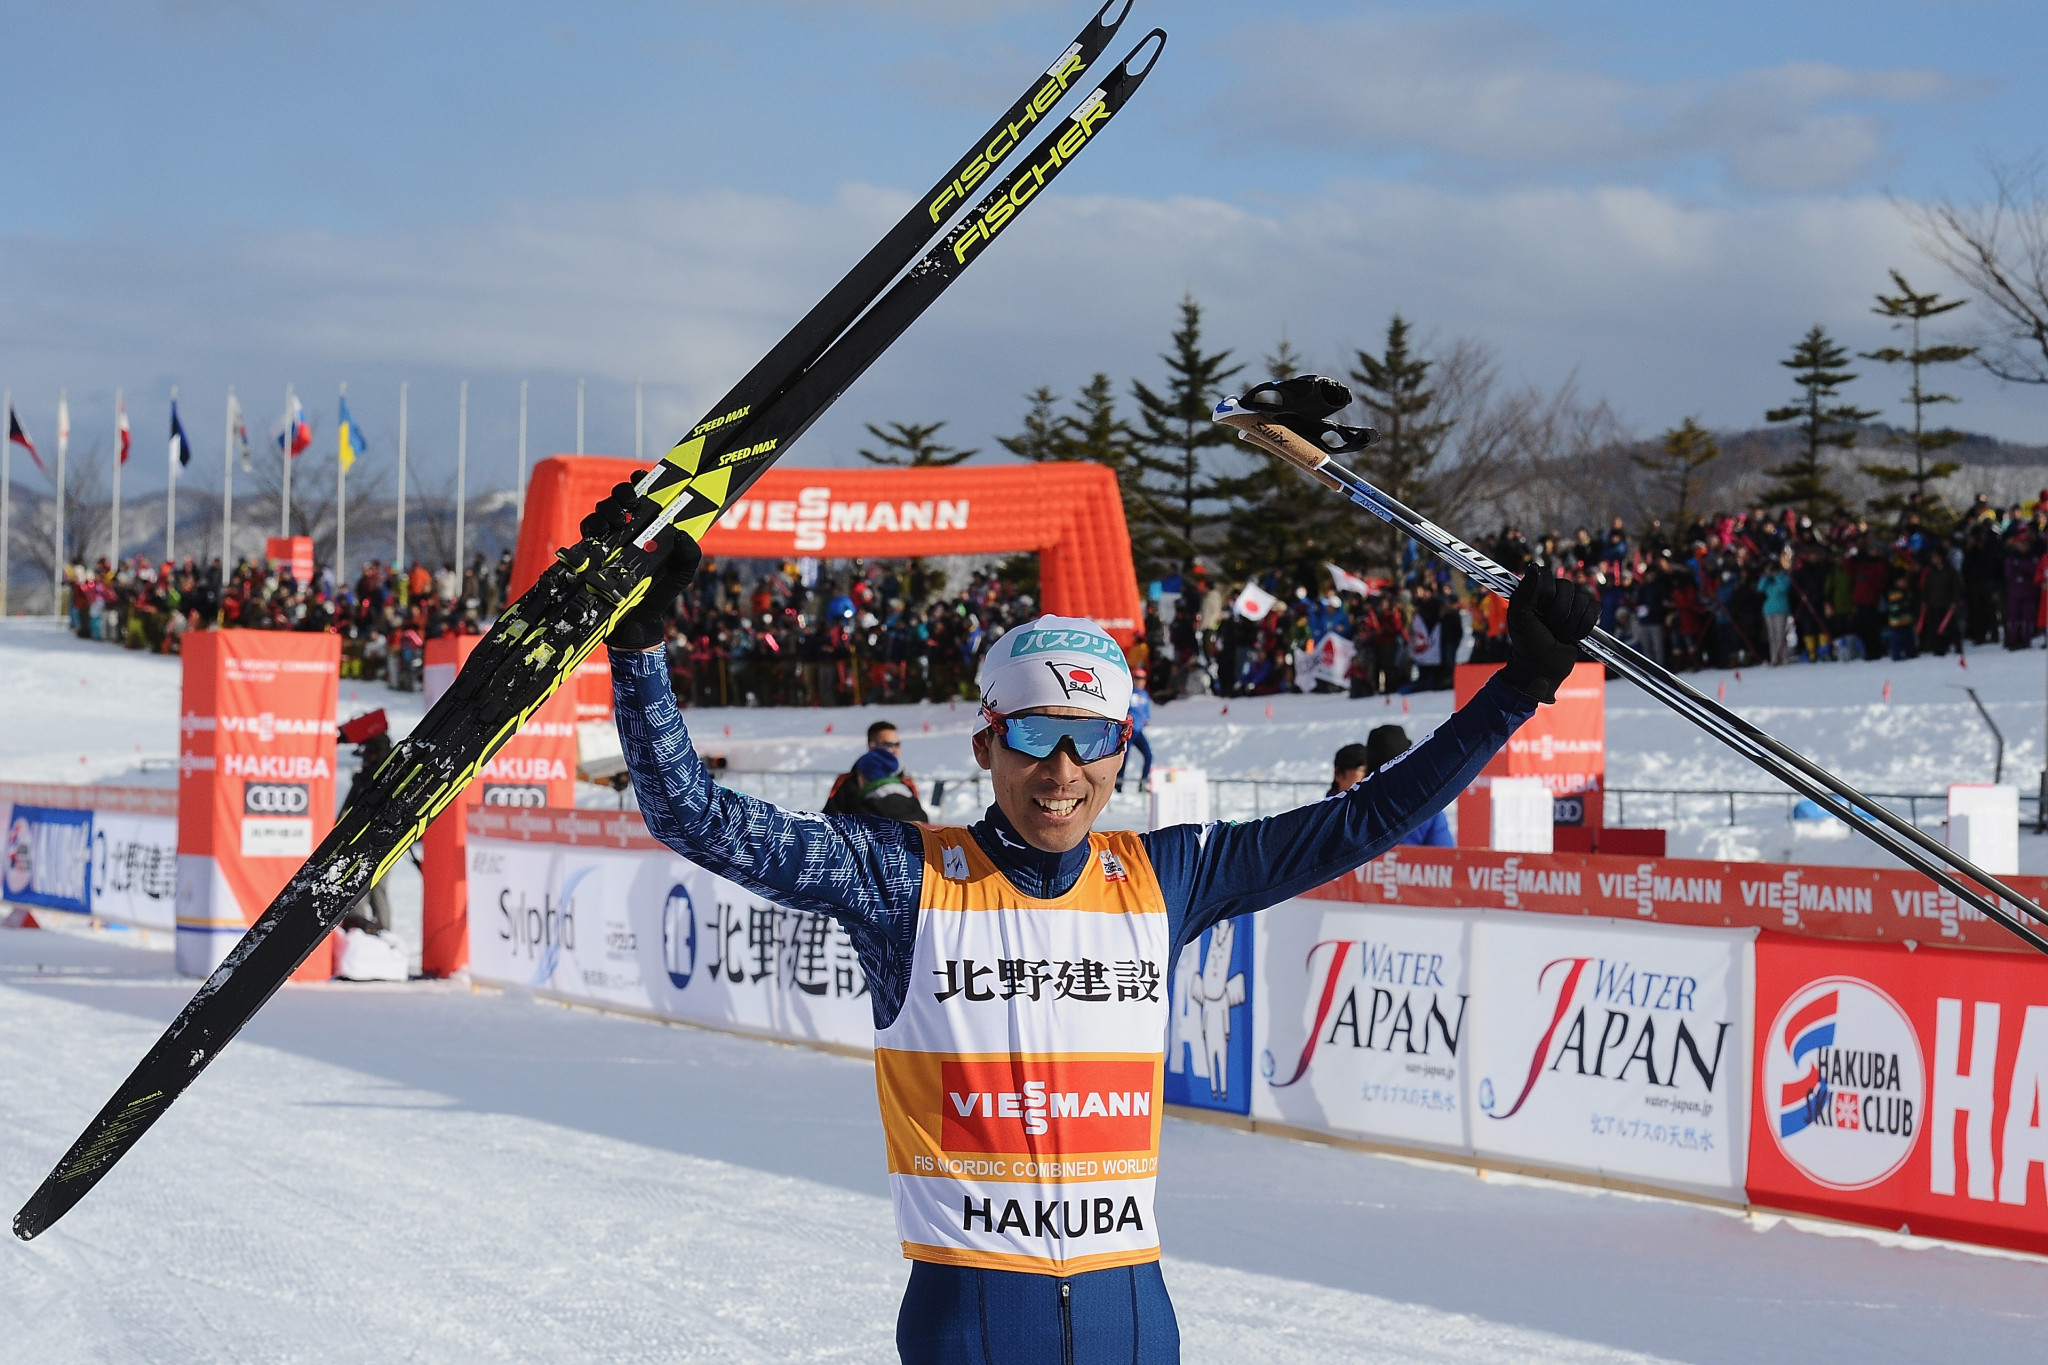 Japan's Watabe claims home victory at FIS Nordic Combined World Cup in Hakuba